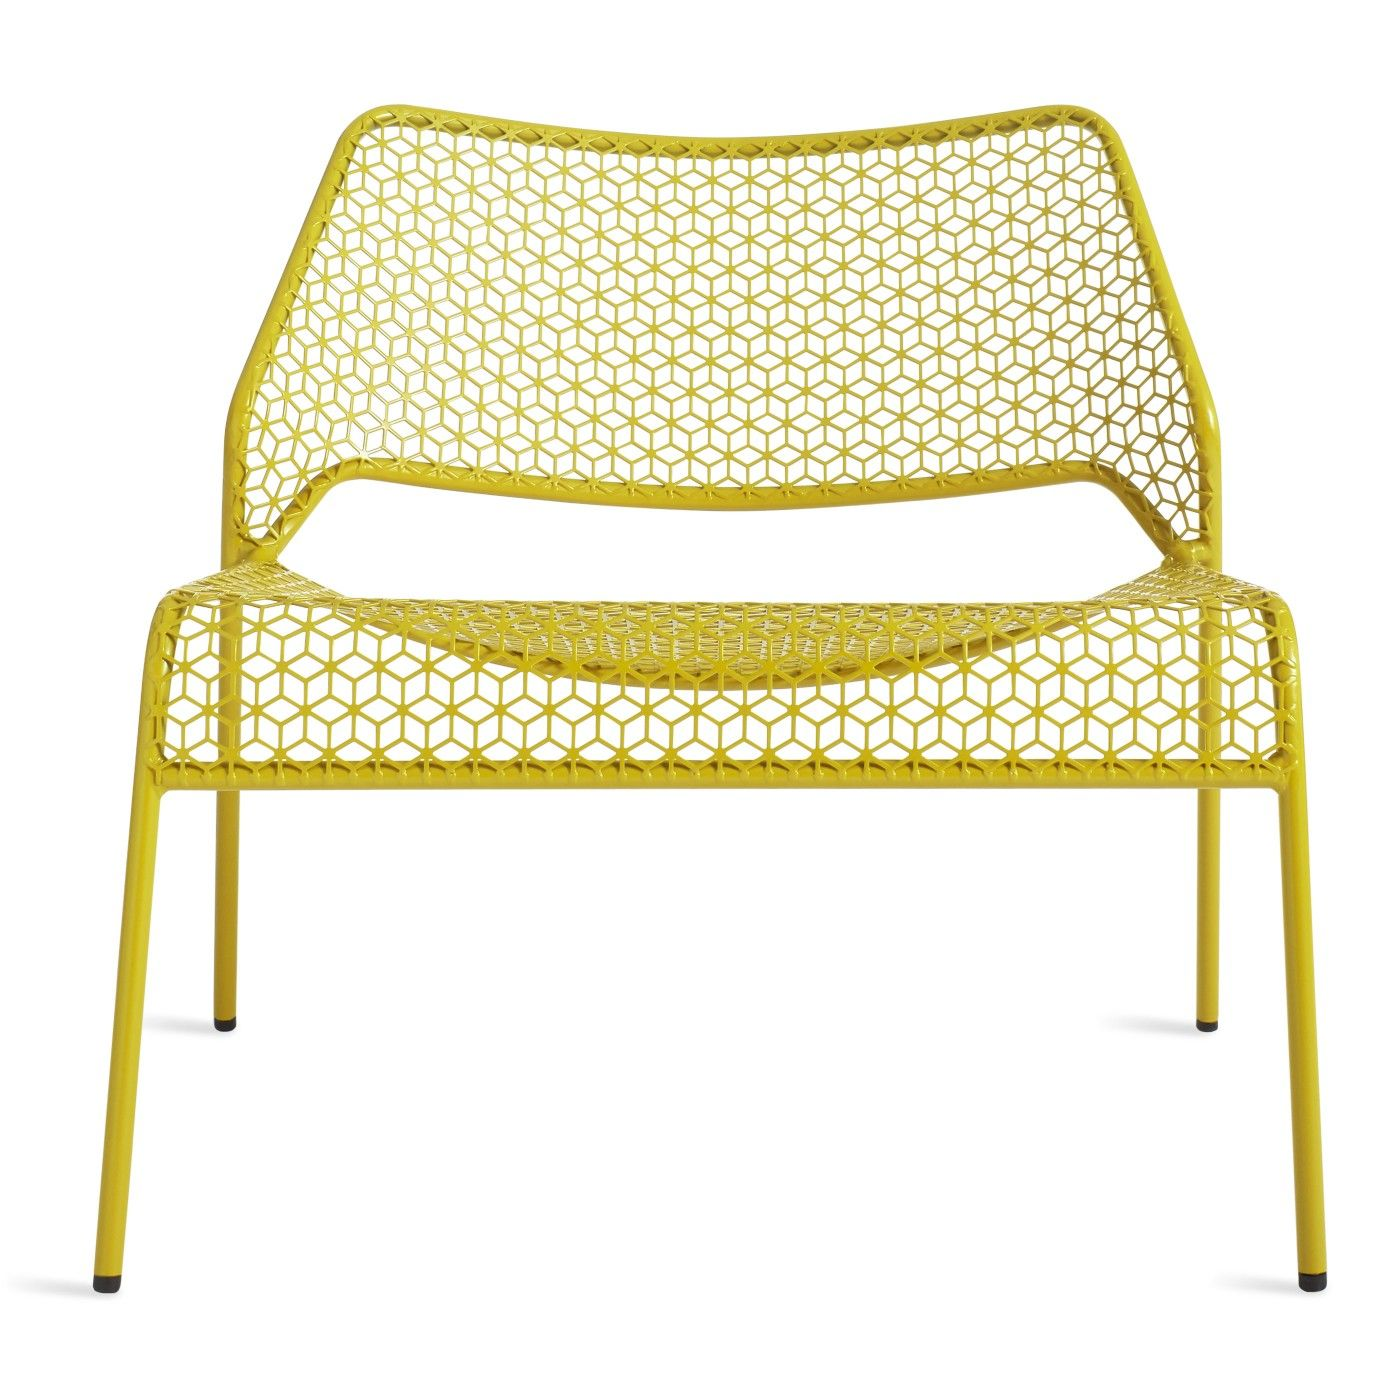 Mesh Lounge Chair Metal Patio Chairs